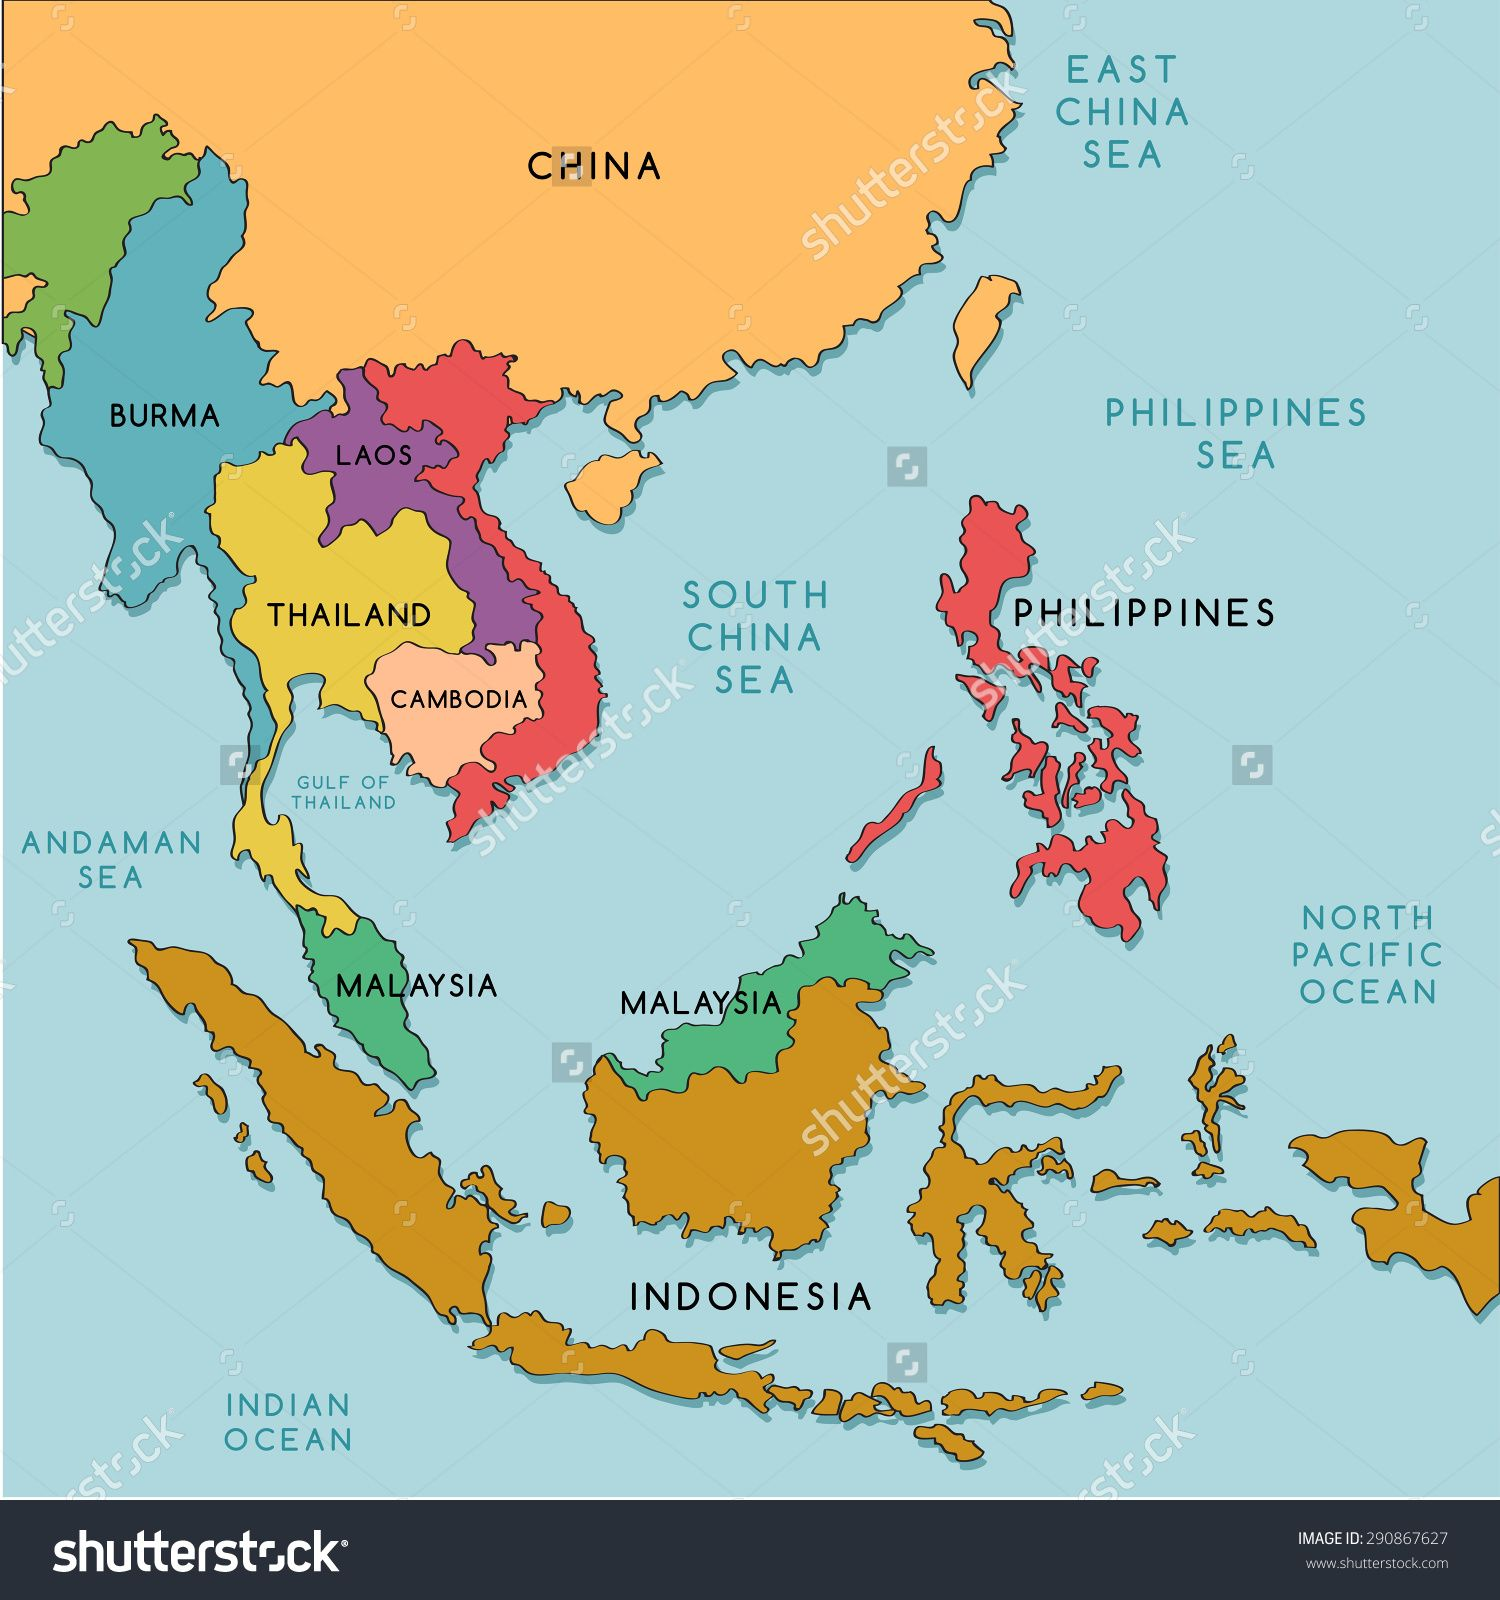 southeast and east asia map Amazing Map Of East And Southeast Asia 3 Asia Map Amazing Maps